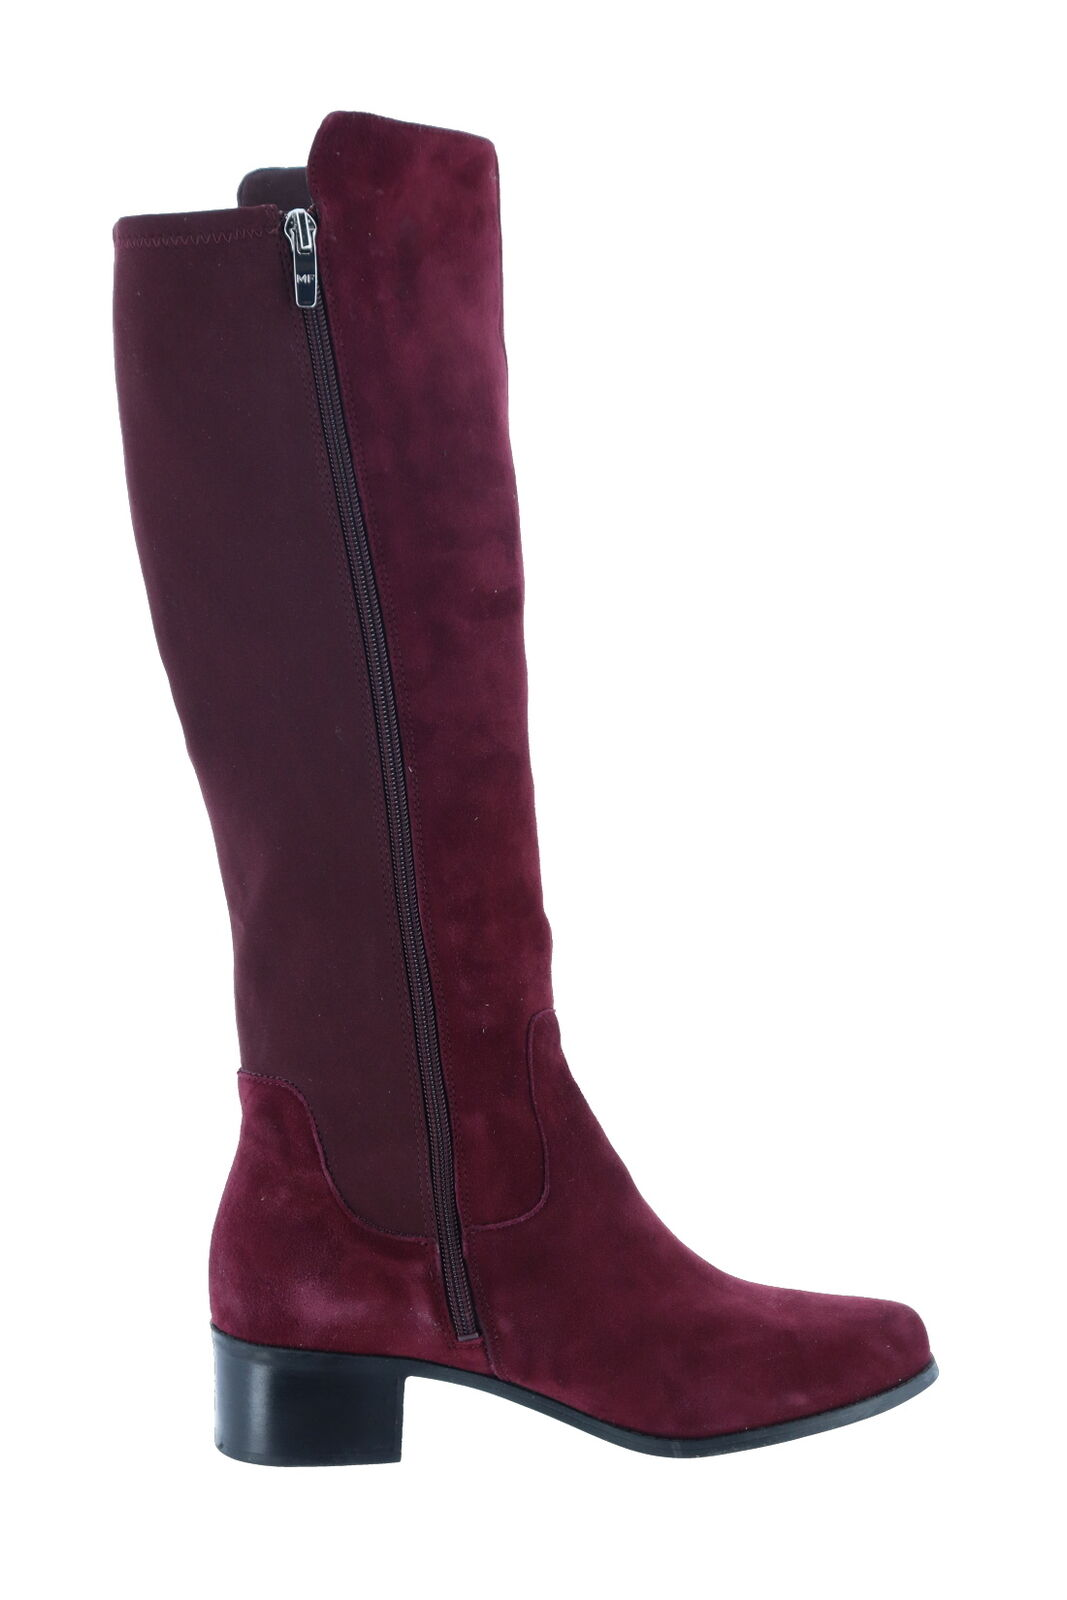 Marc Shaft Fisher Medium Calf Leder Shaft Marc Stiefel Burgundy 10M NEW A295884 6eb3a1